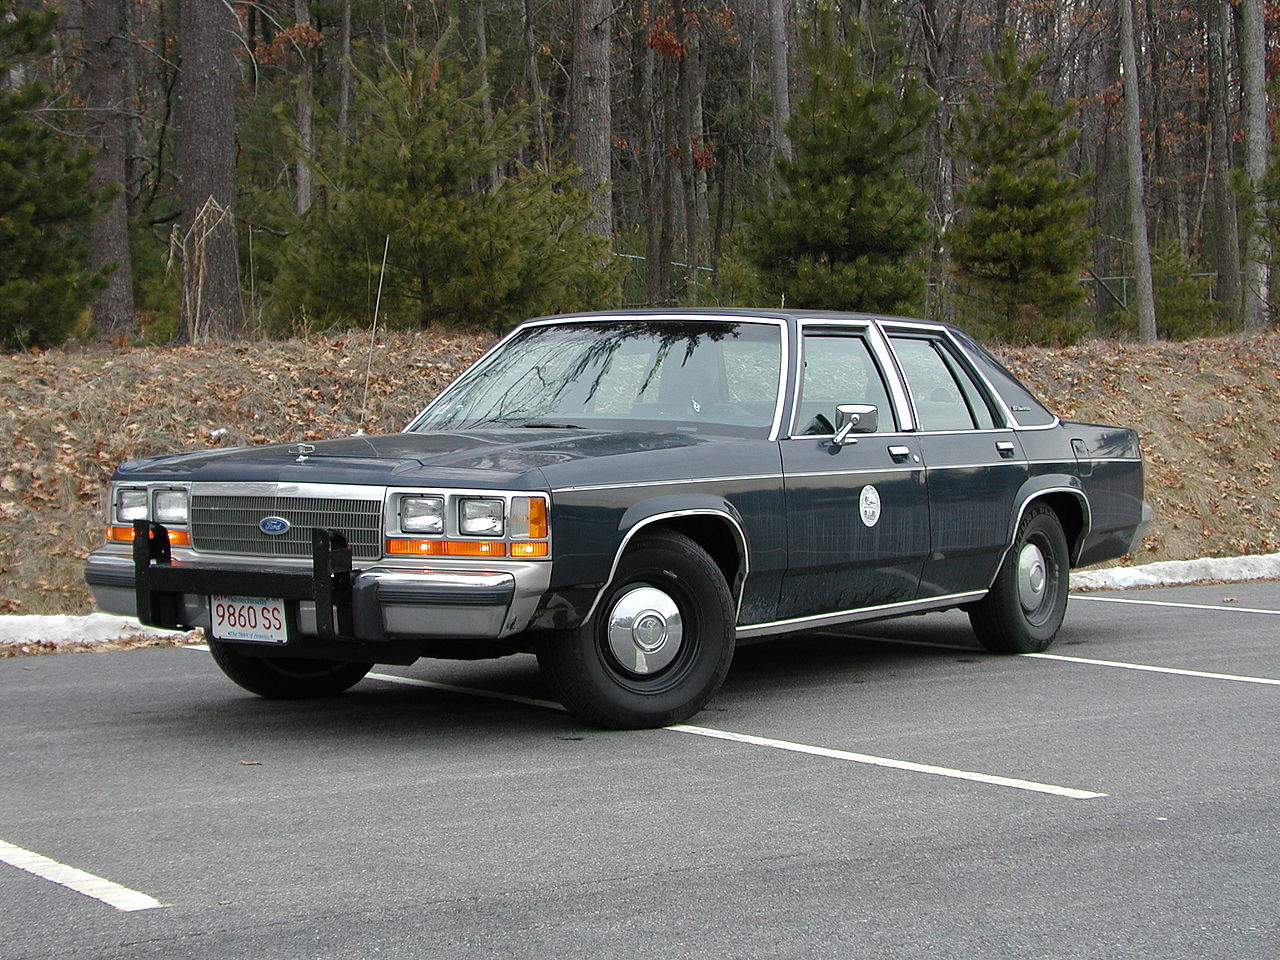 Fbi Cars For Sale >> File:1990 Ford Crown Victoria.jpg - Wikimedia Commons